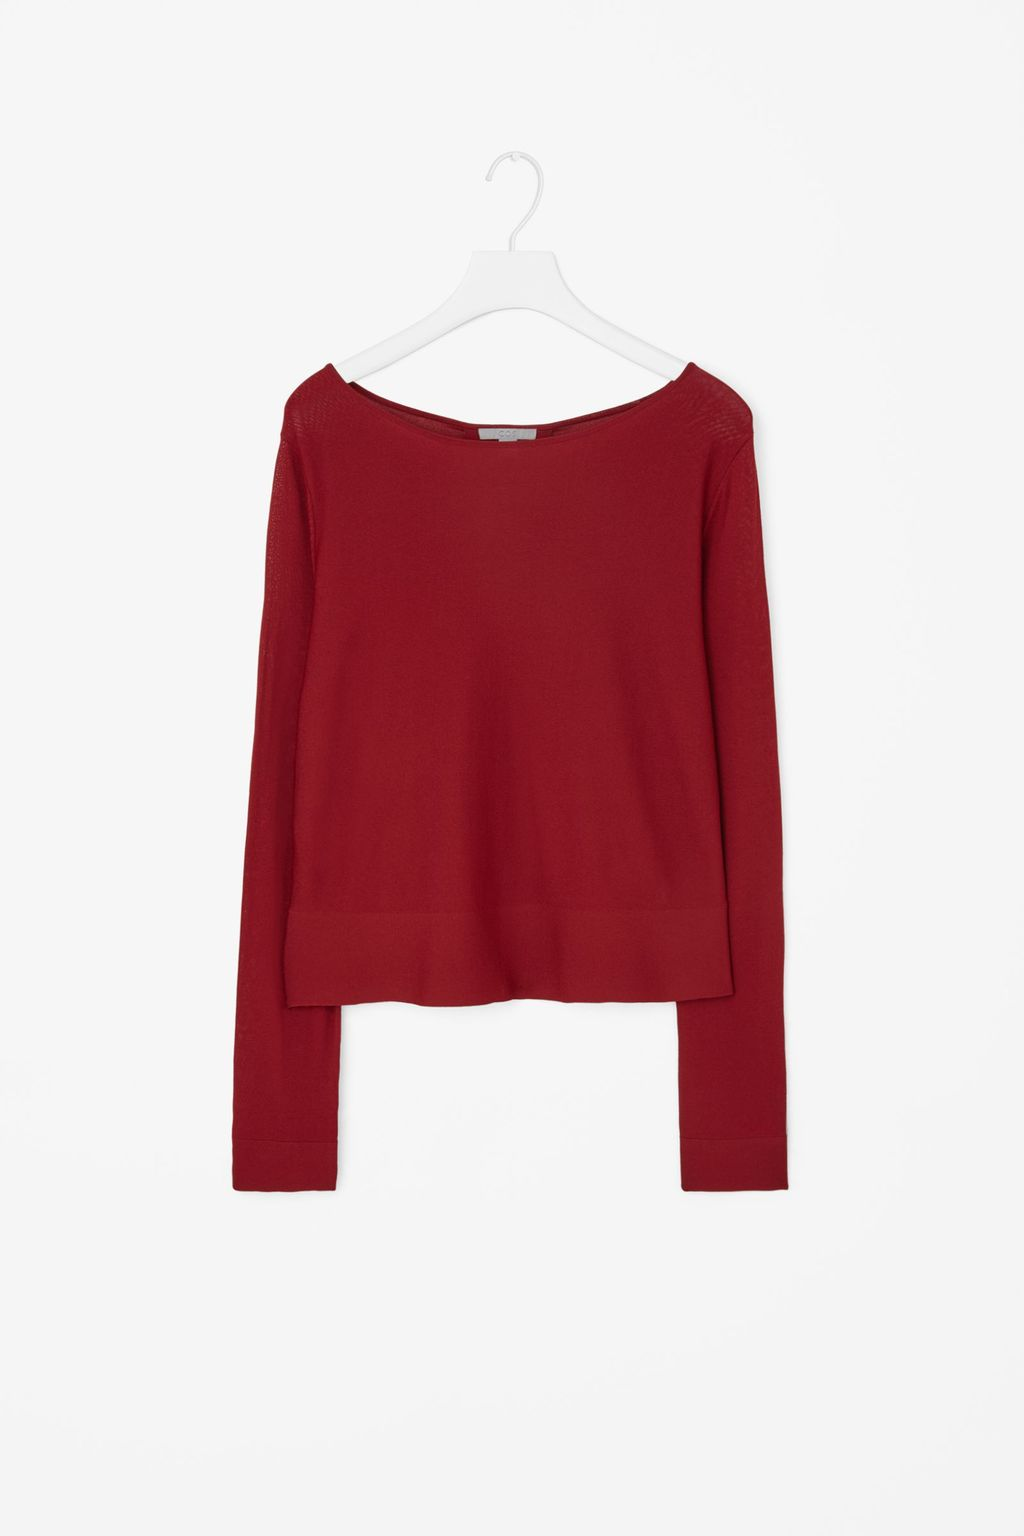 Fine Knit Cropped Jumper - neckline: slash/boat neckline; pattern: plain; style: standard; predominant colour: true red; occasions: casual, creative work; length: standard; fit: loose; sleeve length: long sleeve; sleeve style: standard; texture group: knits/crochet; pattern type: knitted - fine stitch; fibres: viscose/rayon - mix; season: a/w 2015; wardrobe: highlight